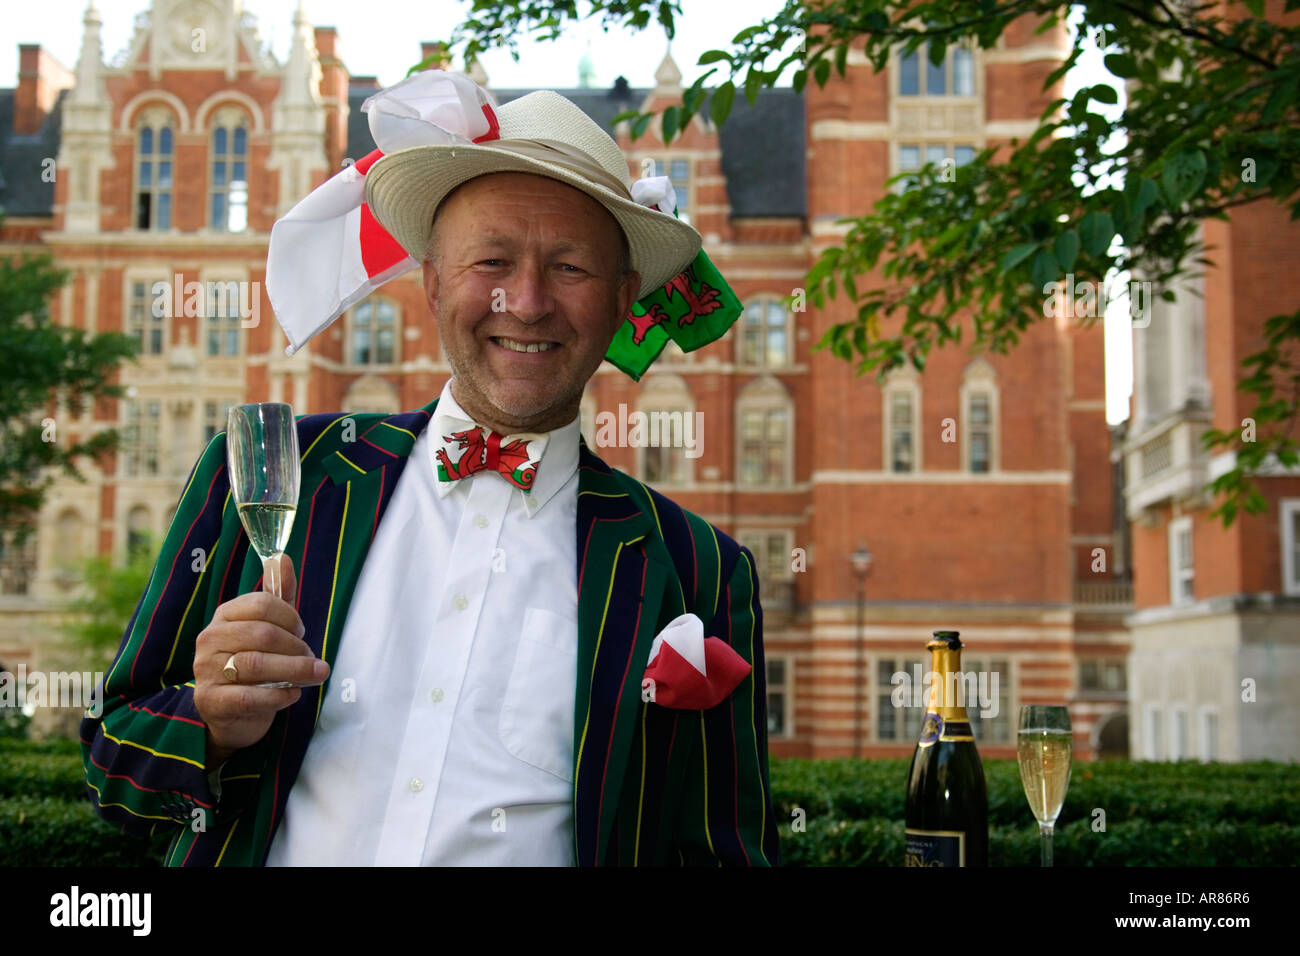 Gentleman with flags on his hat and a glass of champagne at the Last Night of the Proms - Stock Image